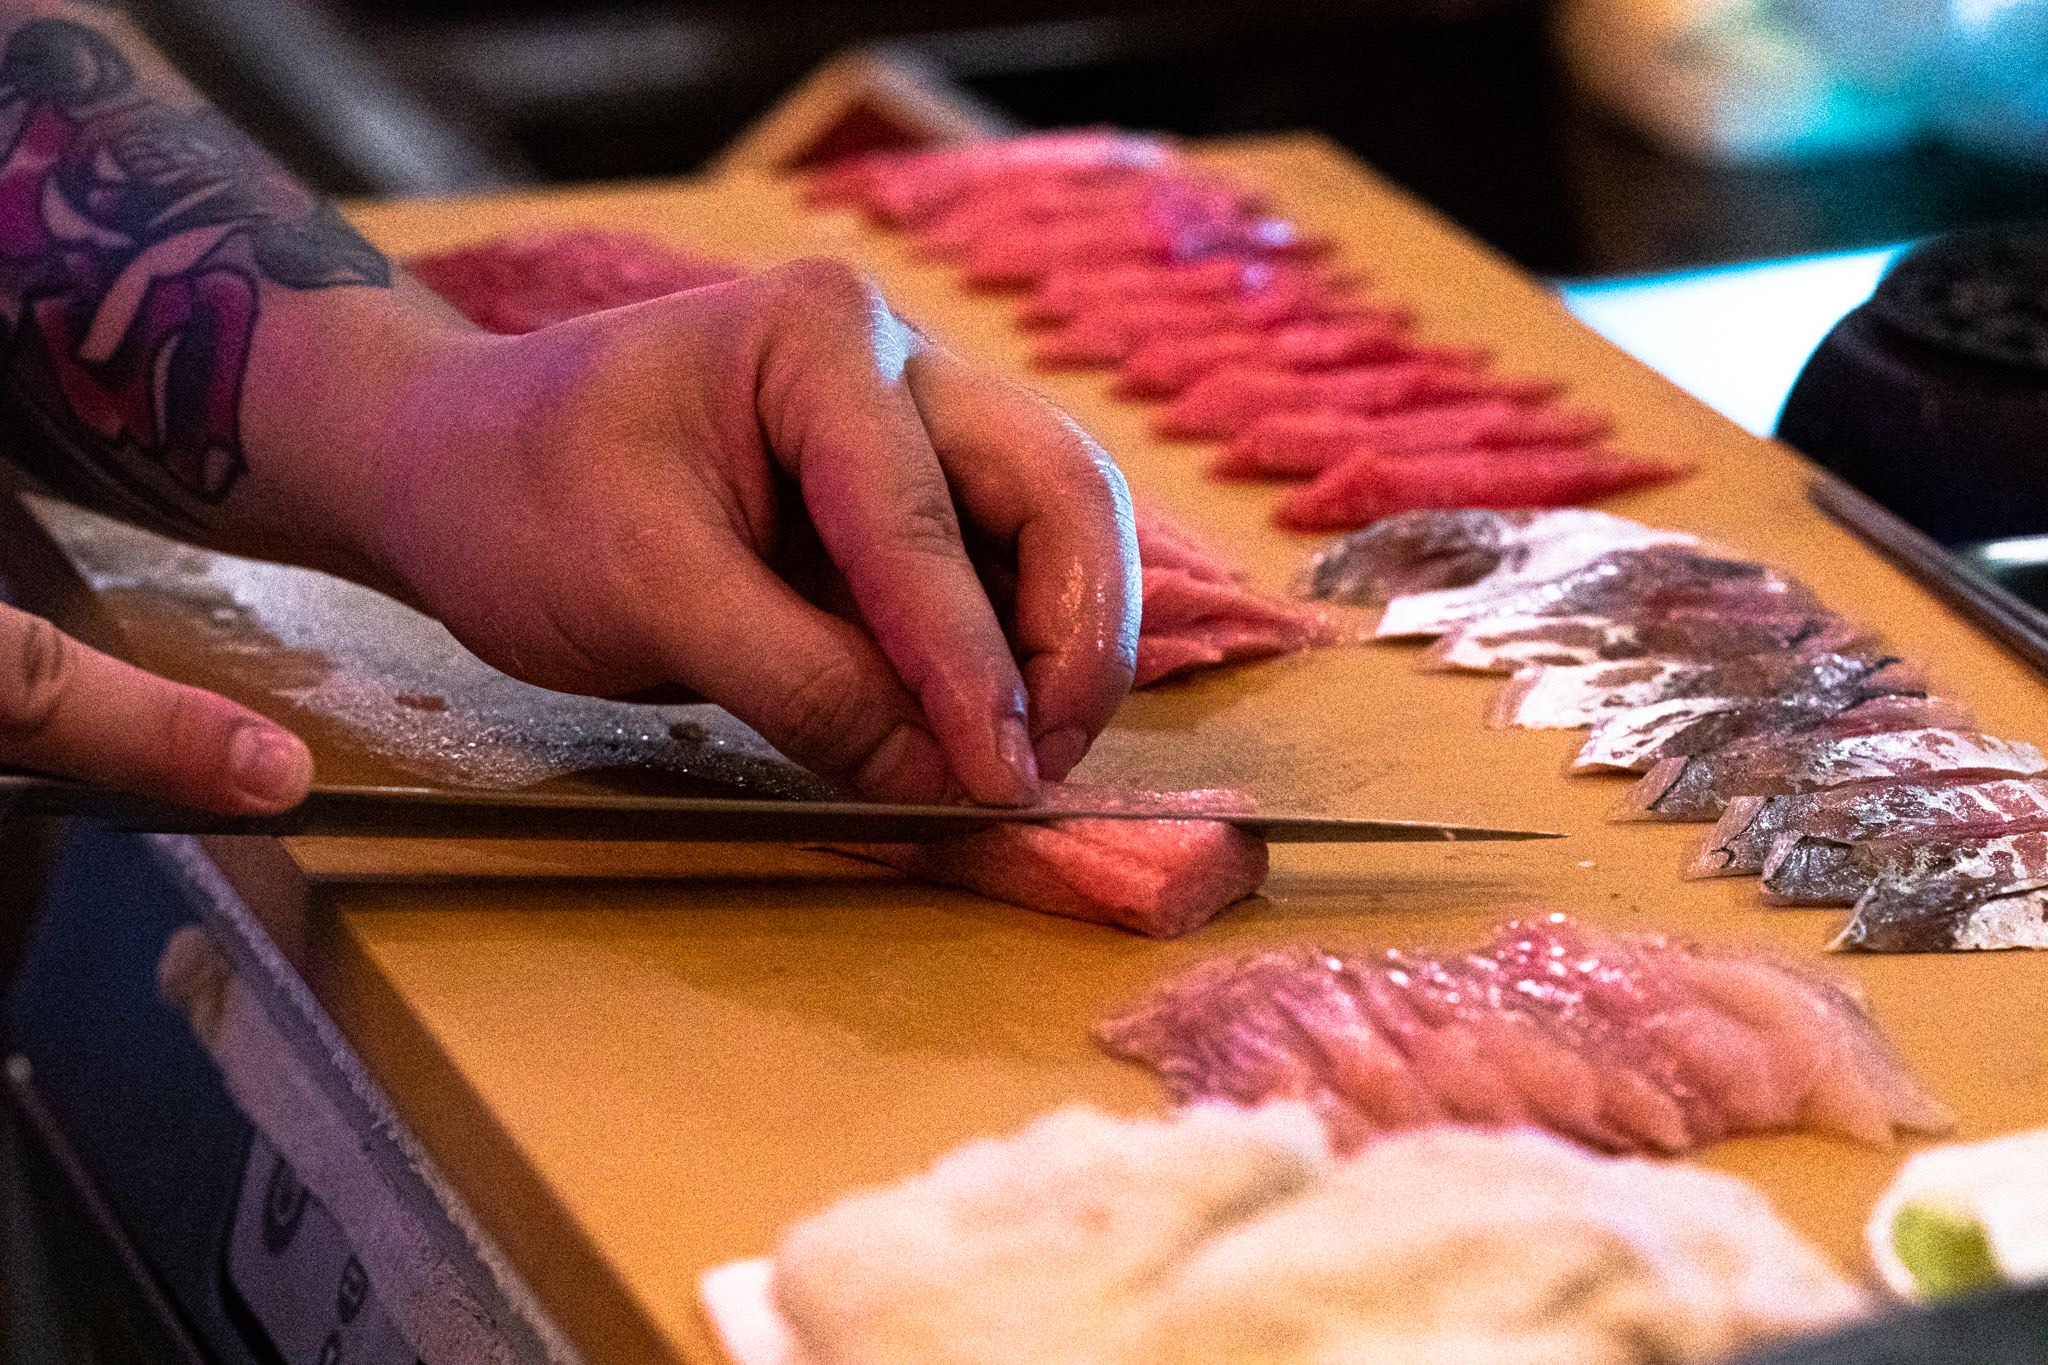 Focus on hands slicing sushi with several slices already laid out on a wooden board